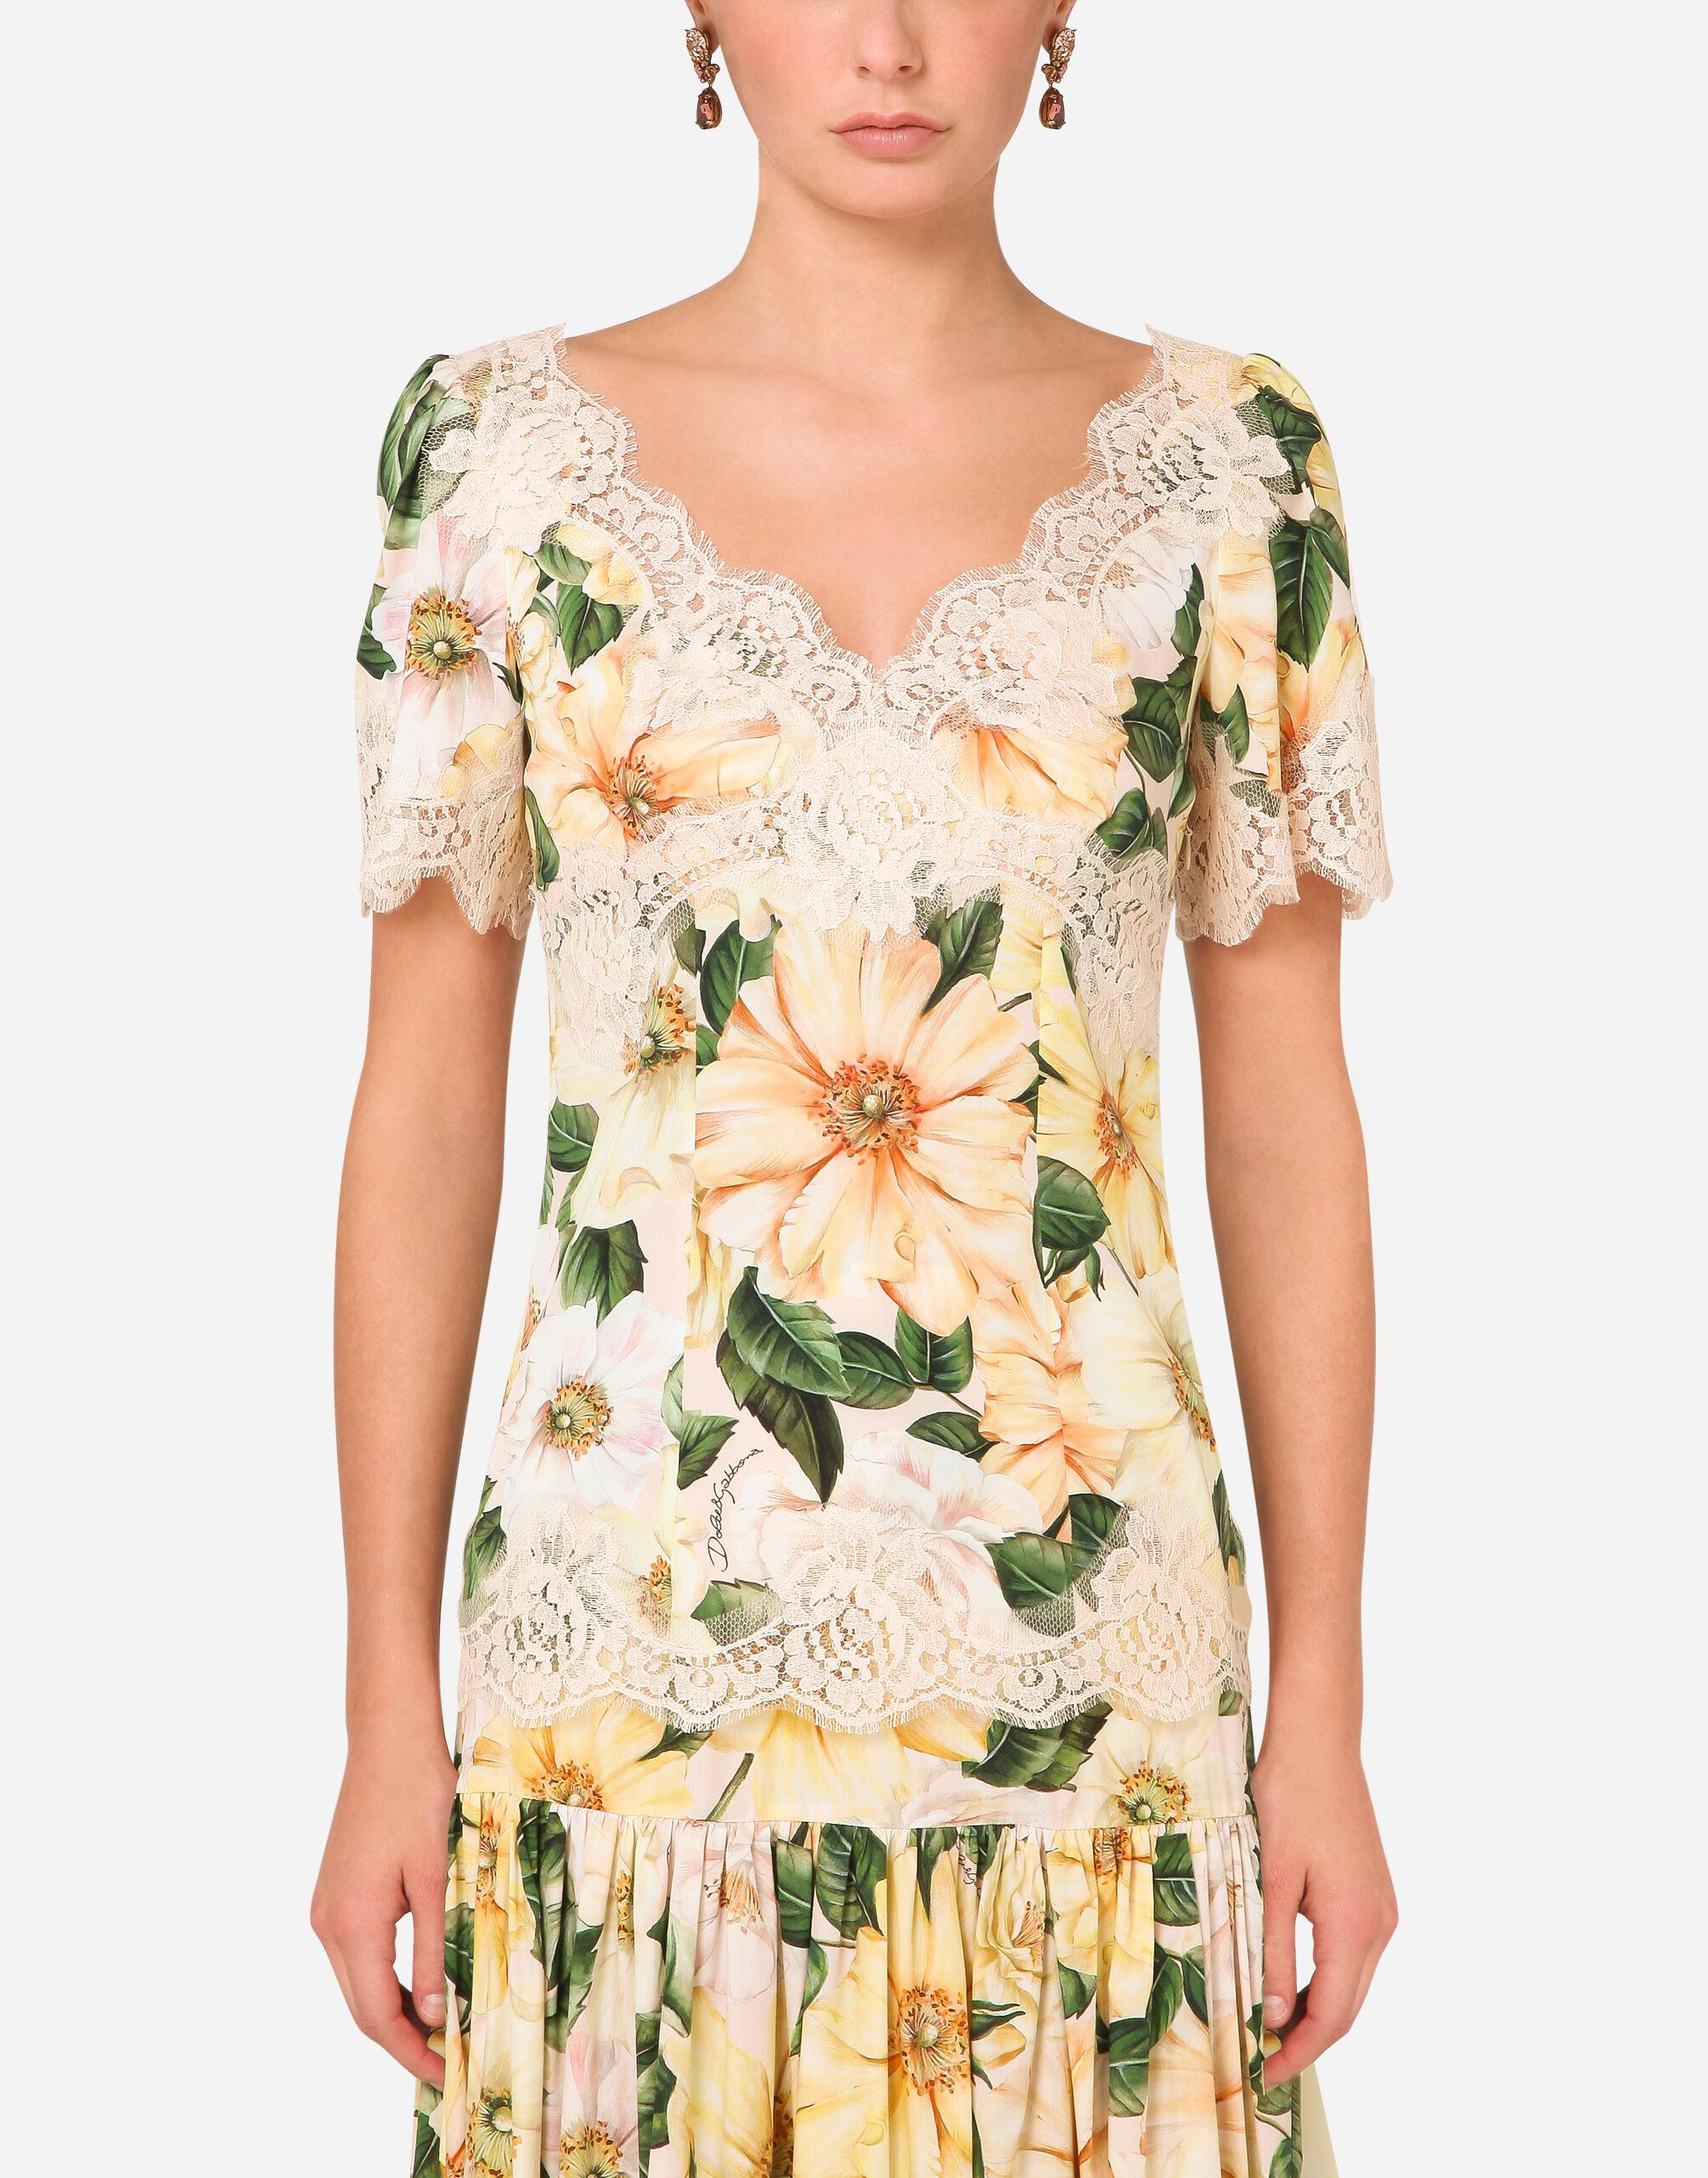 Camellia-print charmeuse top with lace details